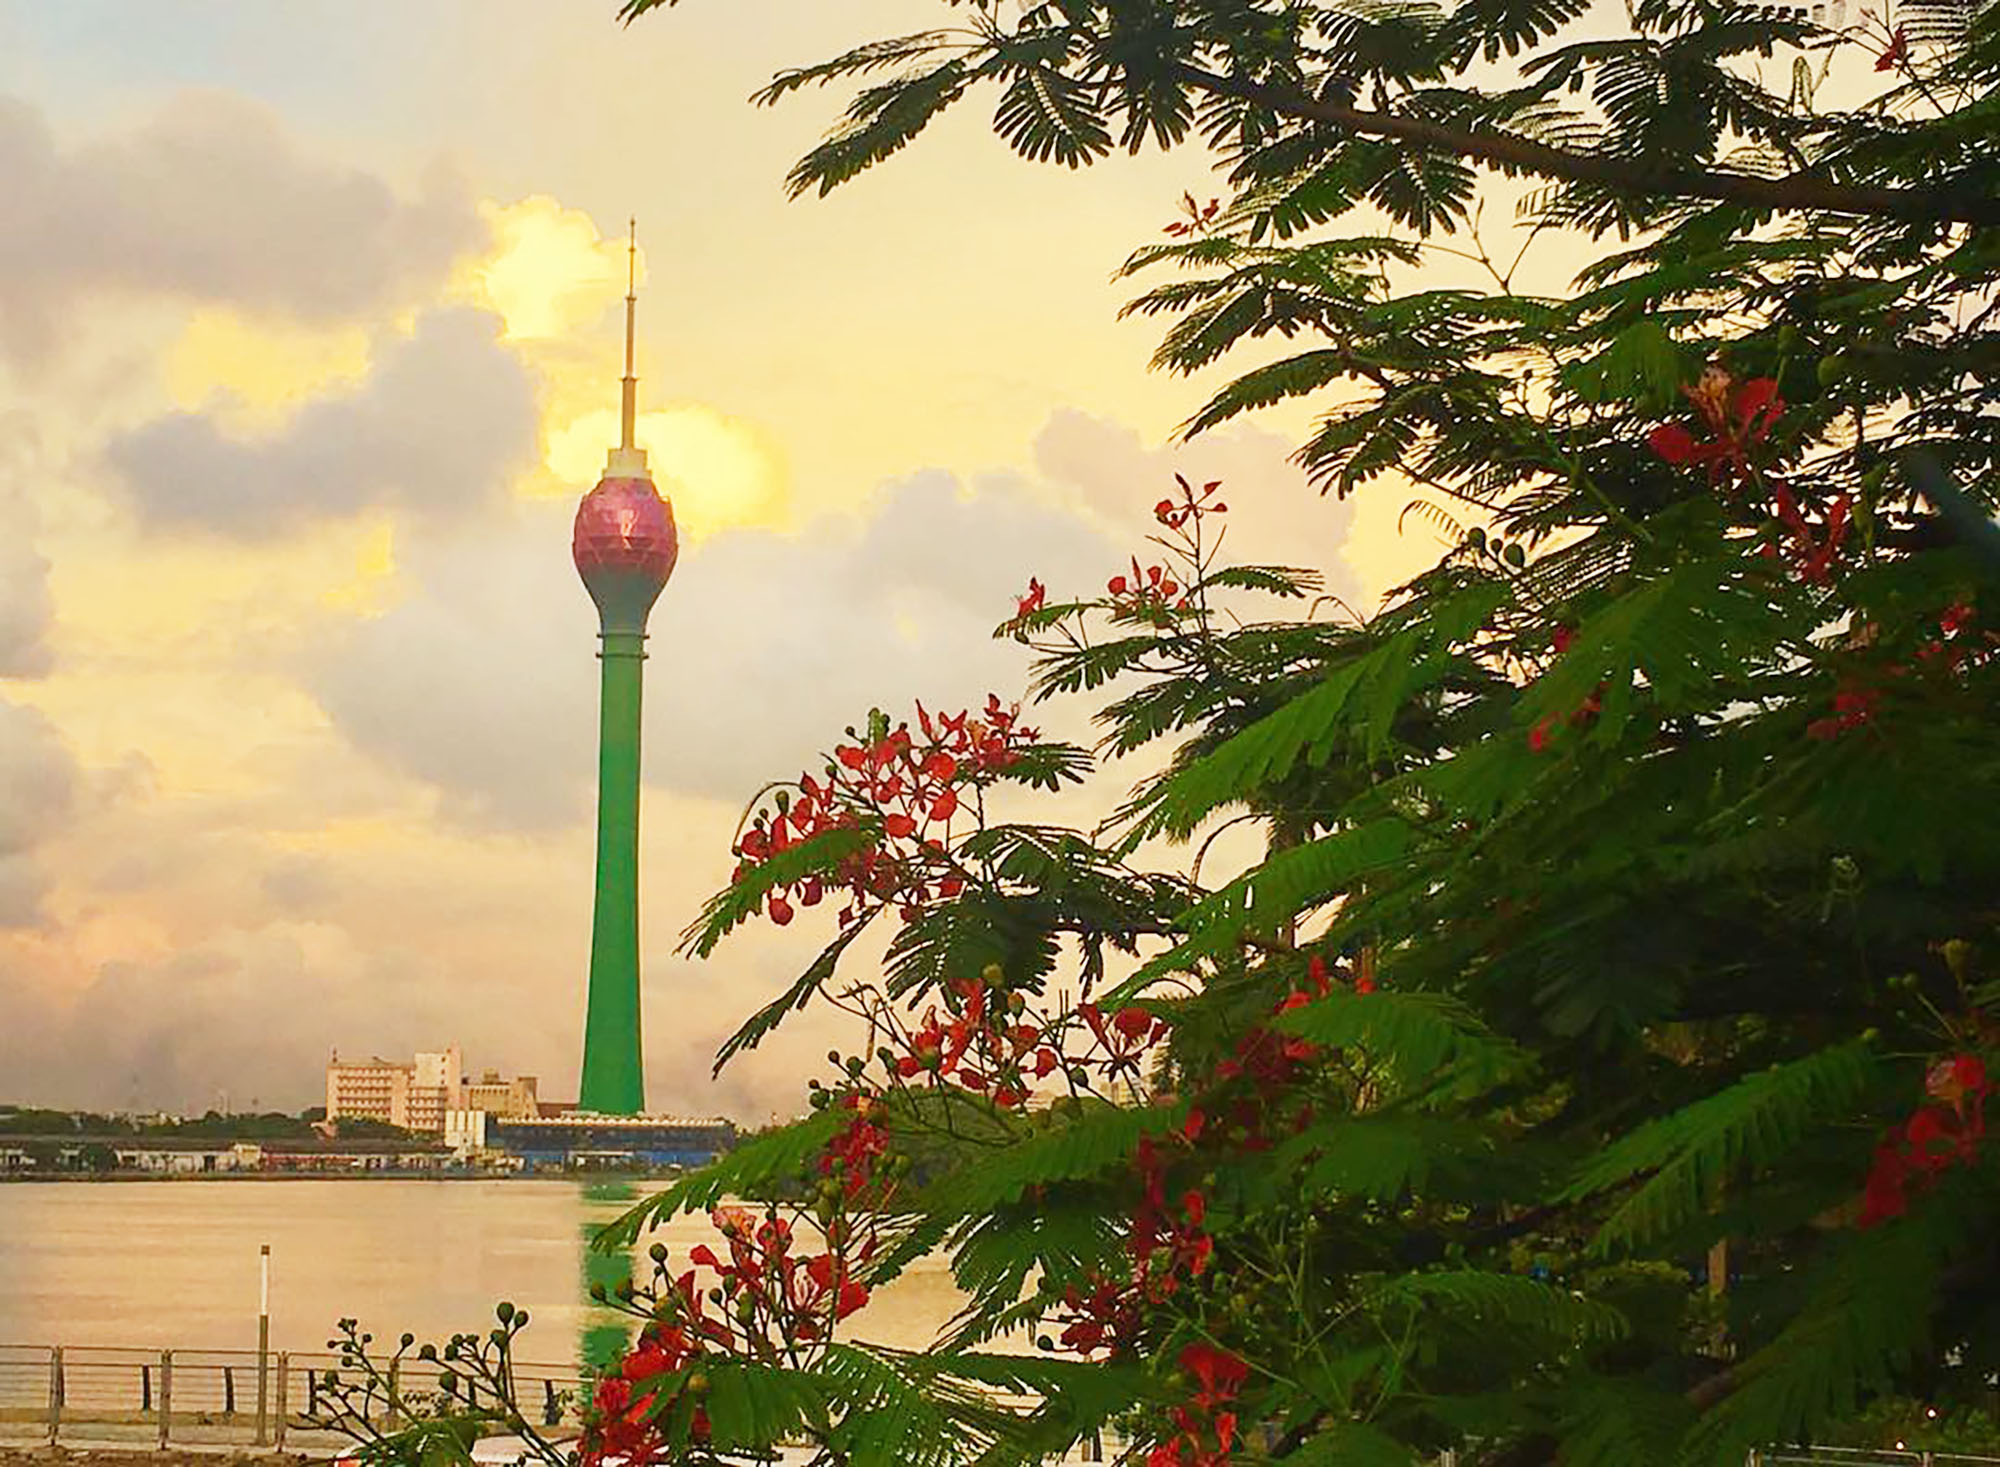 The Colombo Lotus Tower at sunset